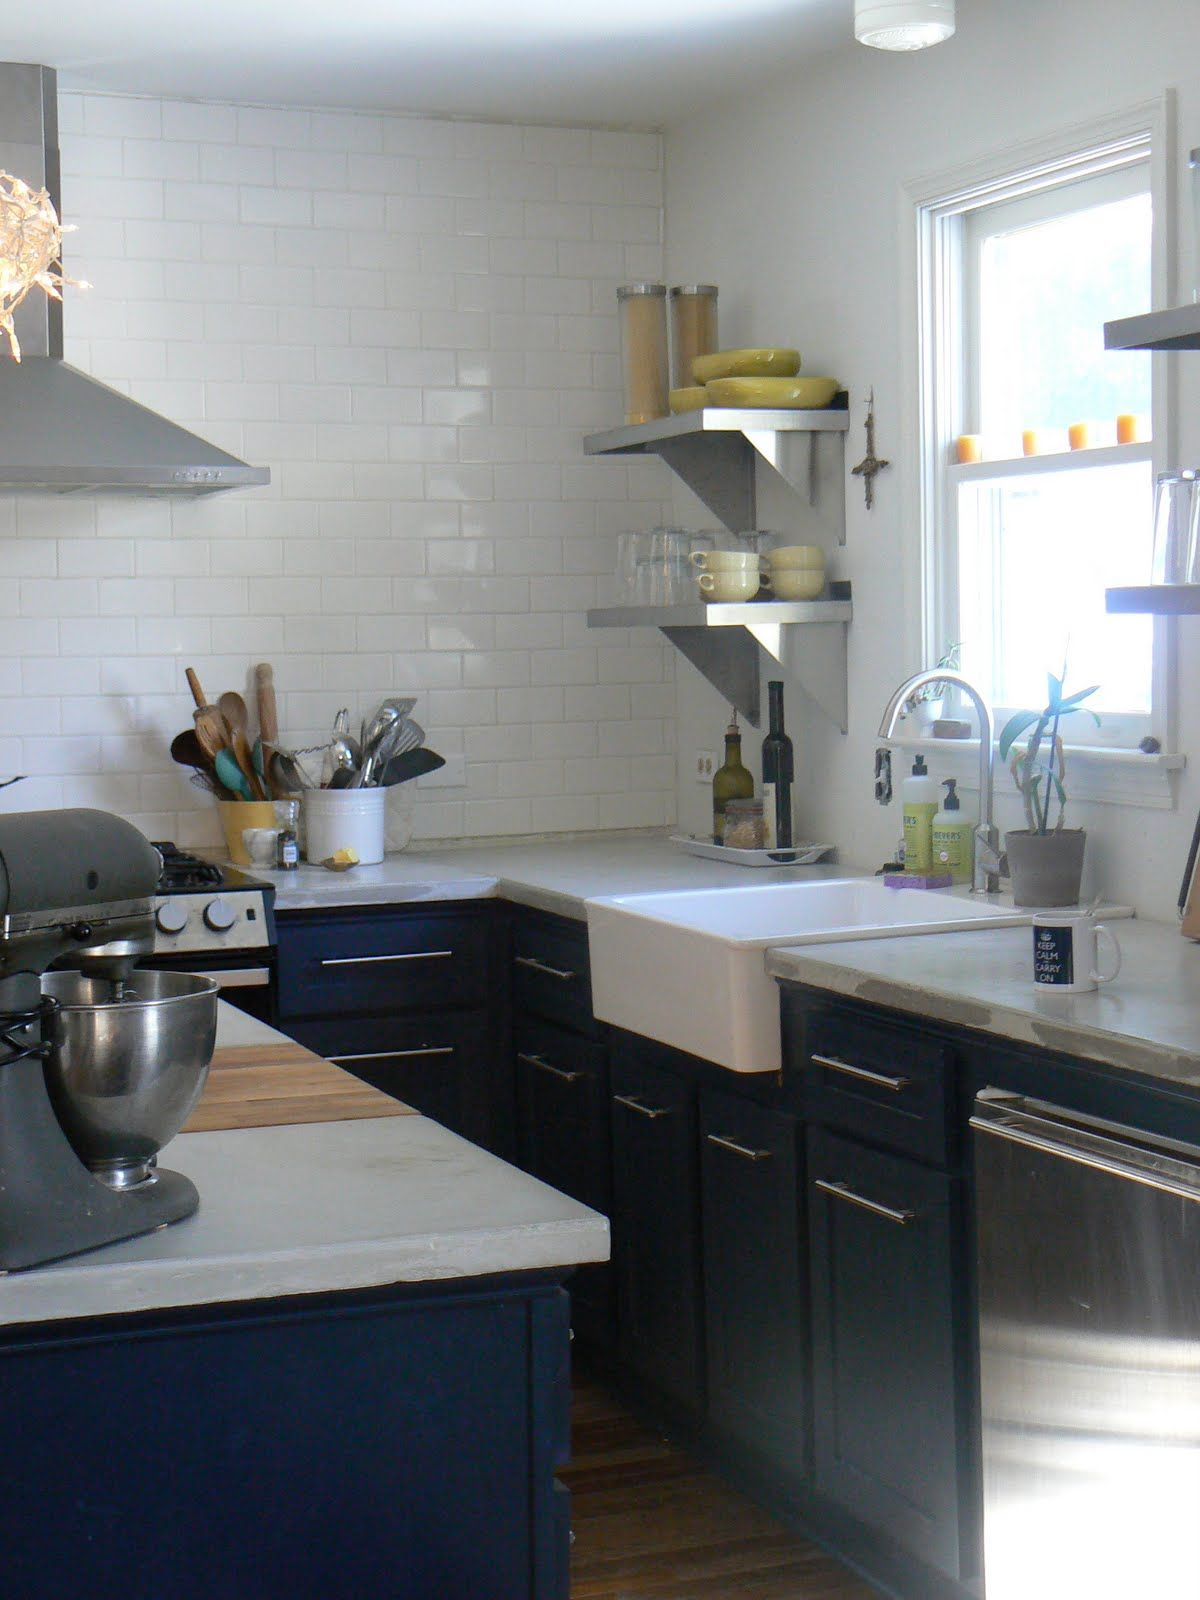 Concrete Countertops And Navy Lower Cabinets Countertops Concrete Countertops Farmhouse Sink